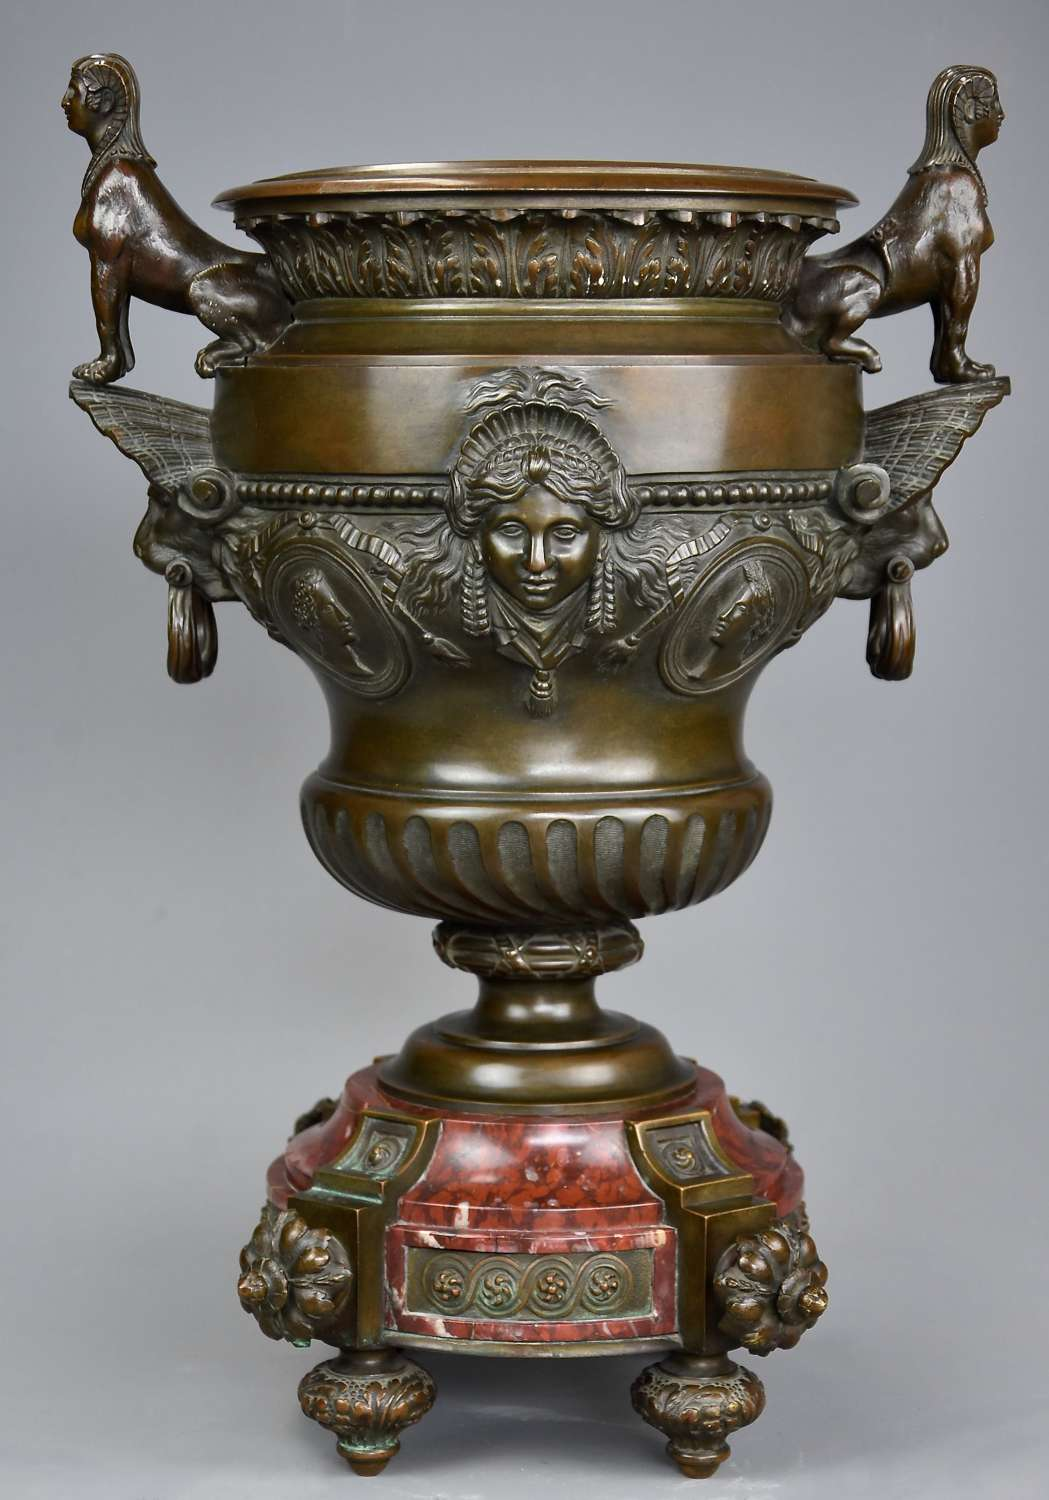 Fine quality large 19th century French bronze urn on marble base